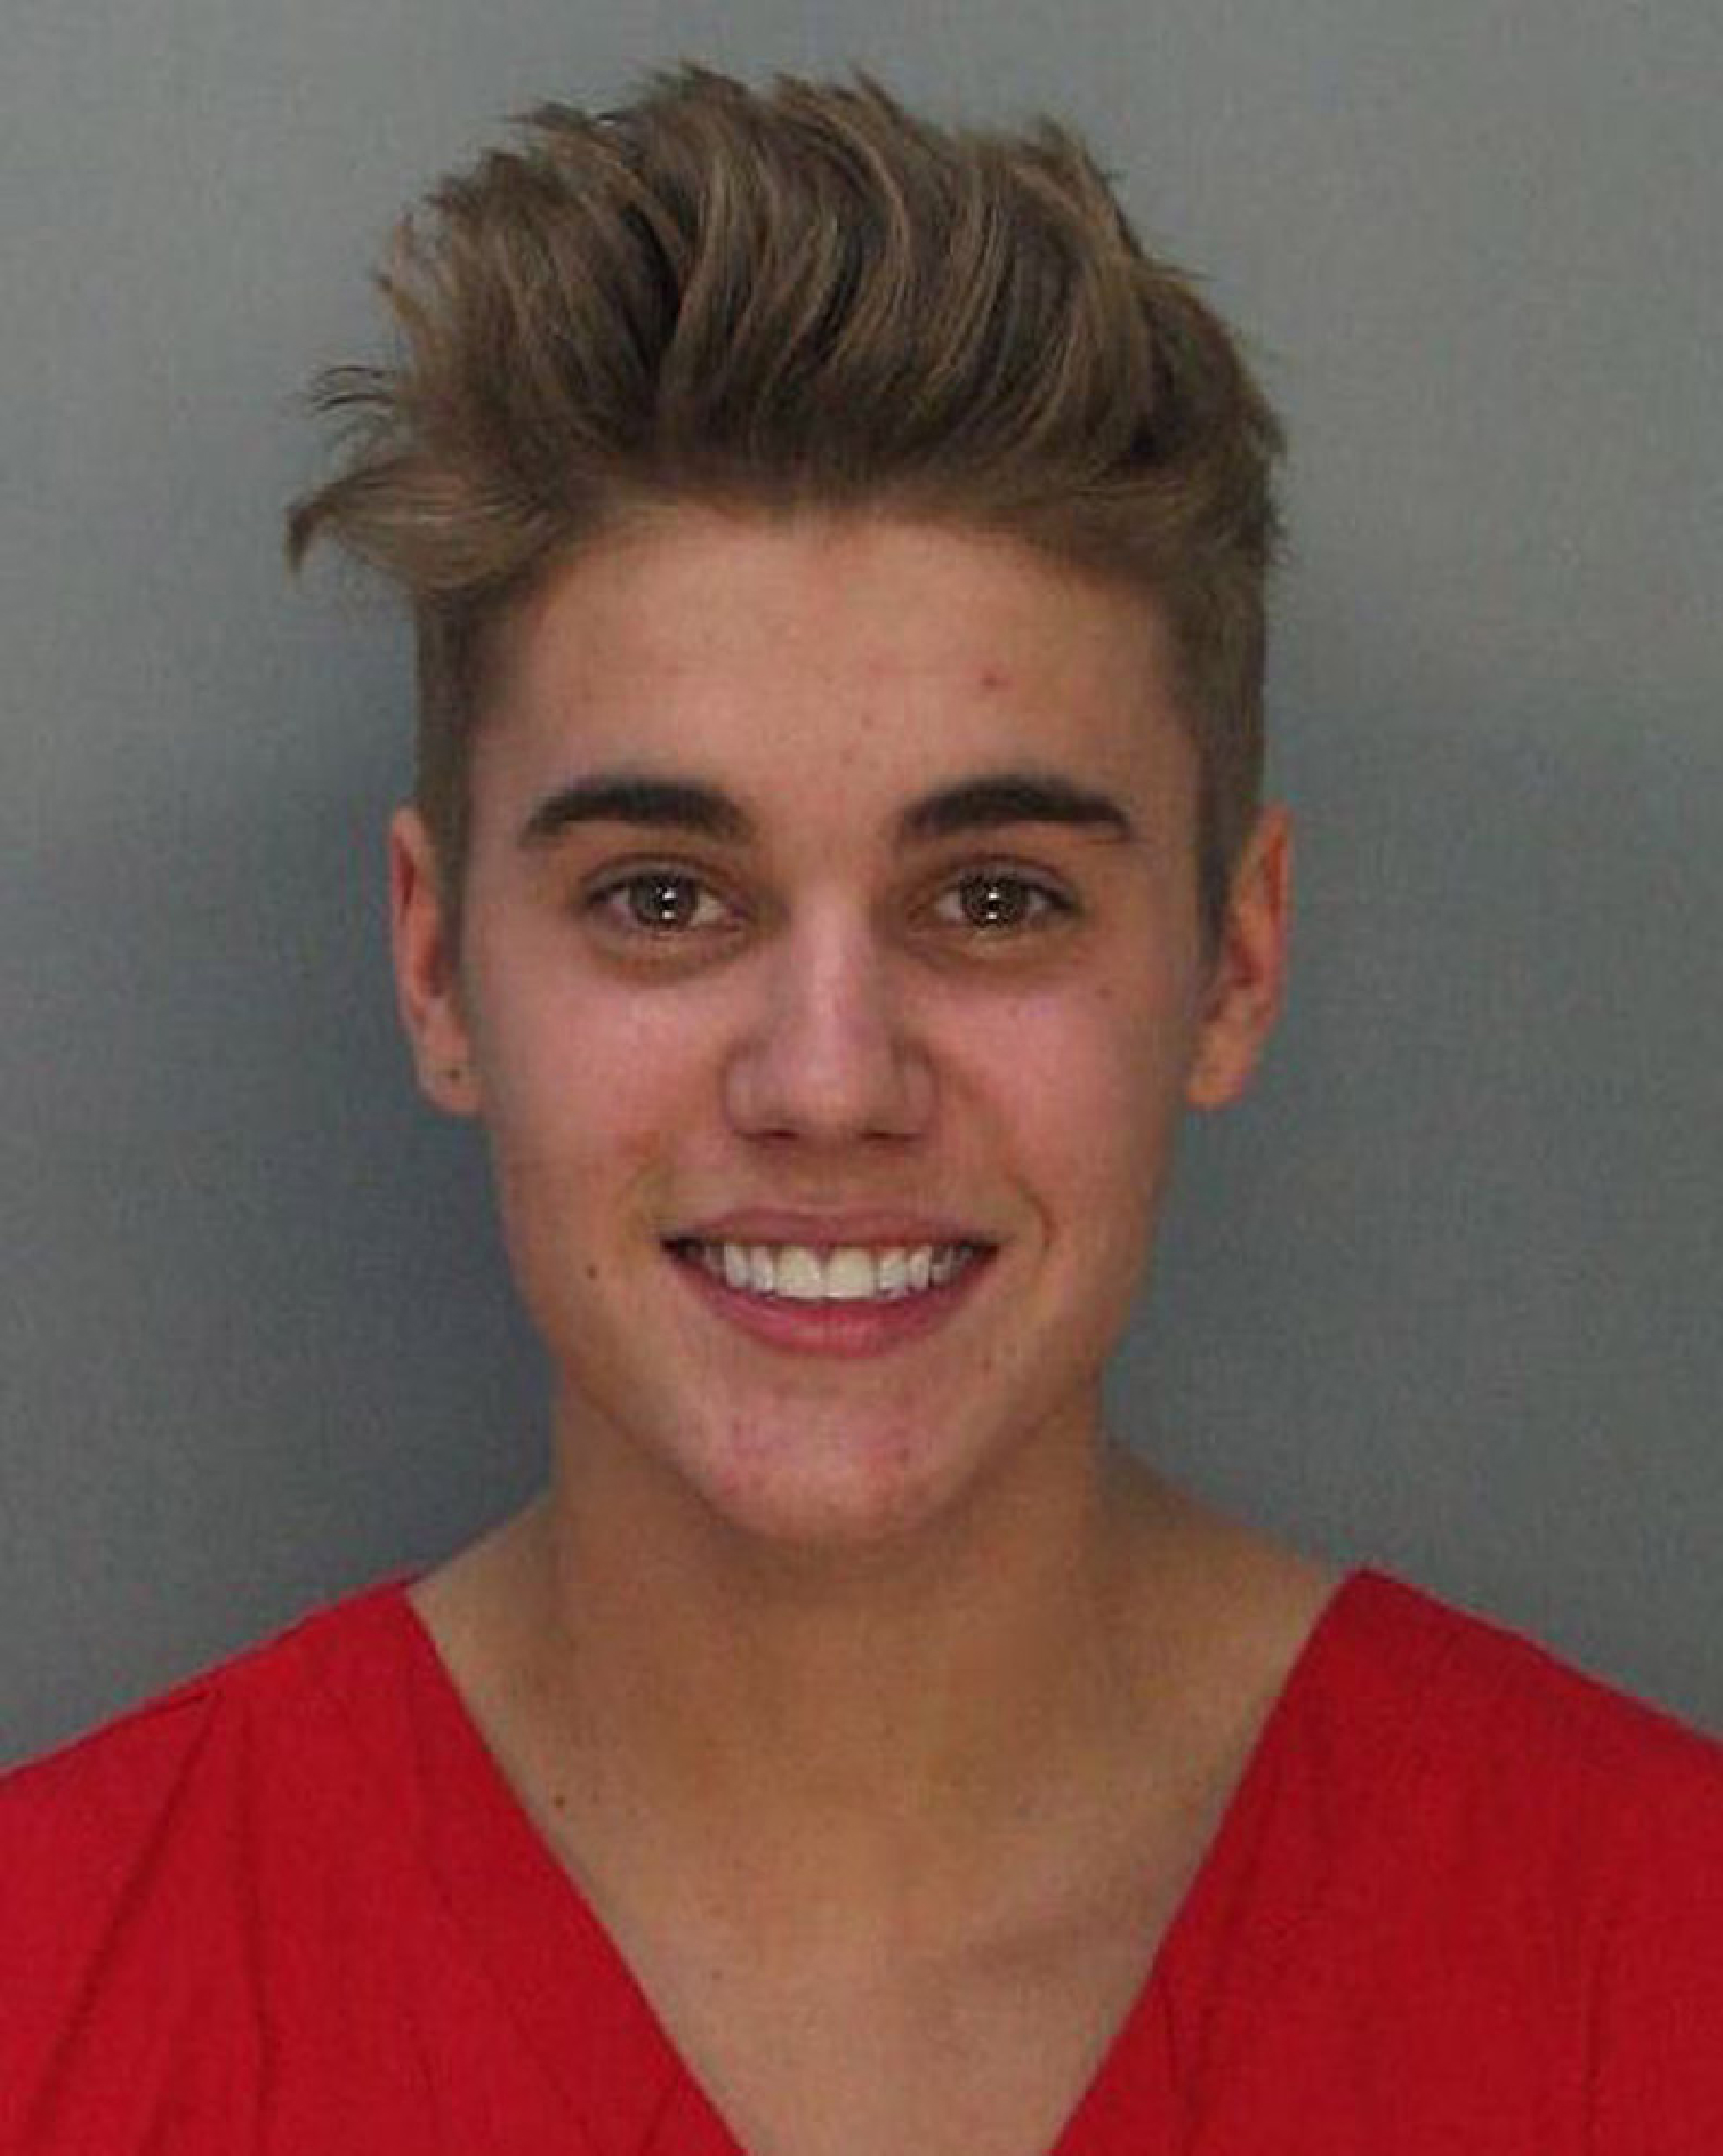 Justin Bieber's DUI Trial to Begin in March